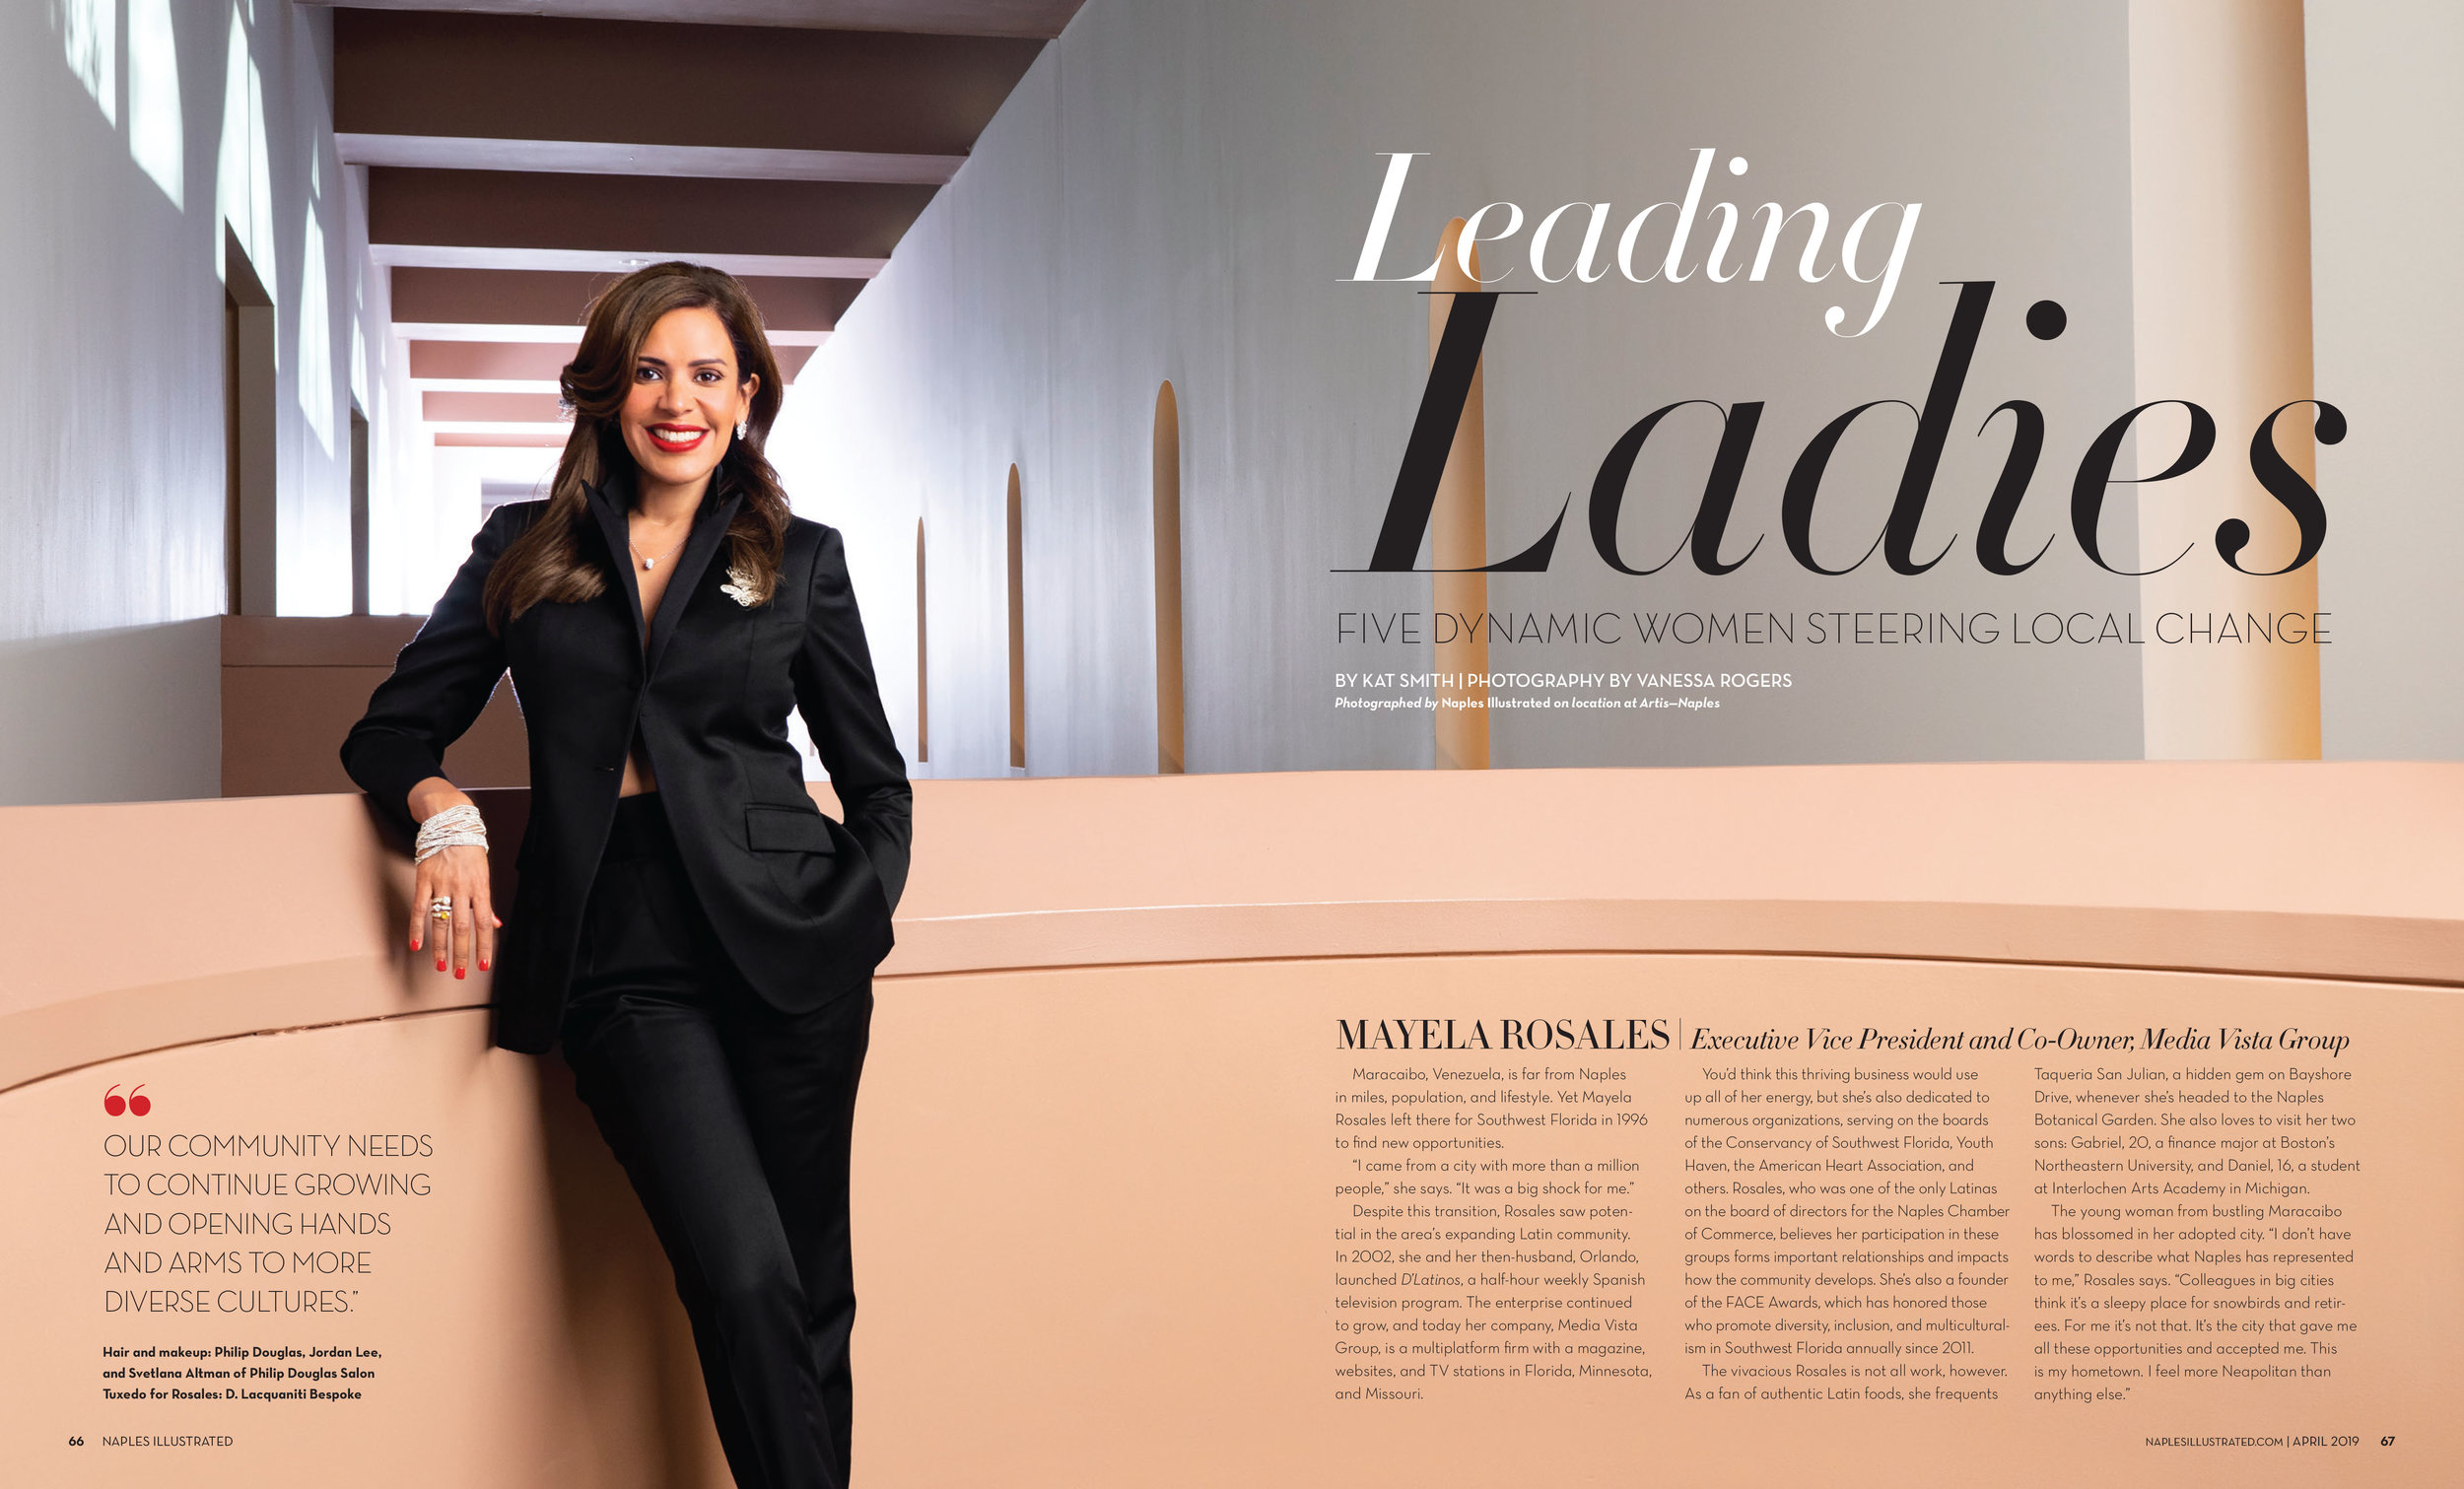 Mayela Rosales, Executive Vice President and Co-owner, Media Vista Group shot on location at Artis Naples. Photography by Vanessa Rogers Photography. Art Direction by Loretta Grantham. Hair and Makeup by Philip Douglas & Co.